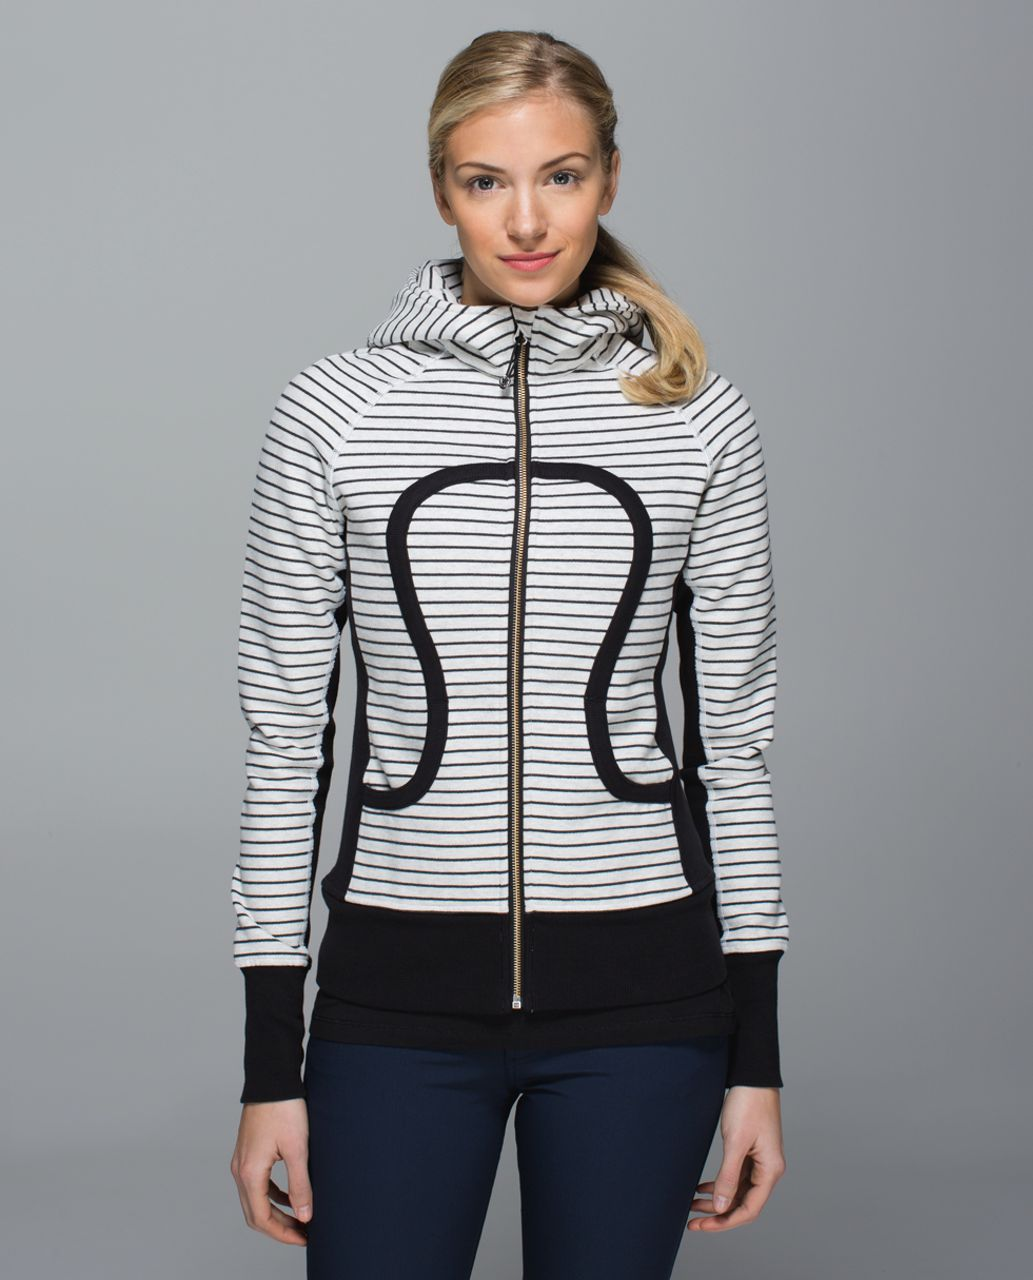 Lululemon Scuba Hoodie II - Parallel Stripe Heathered White Heathered Black / White / Black